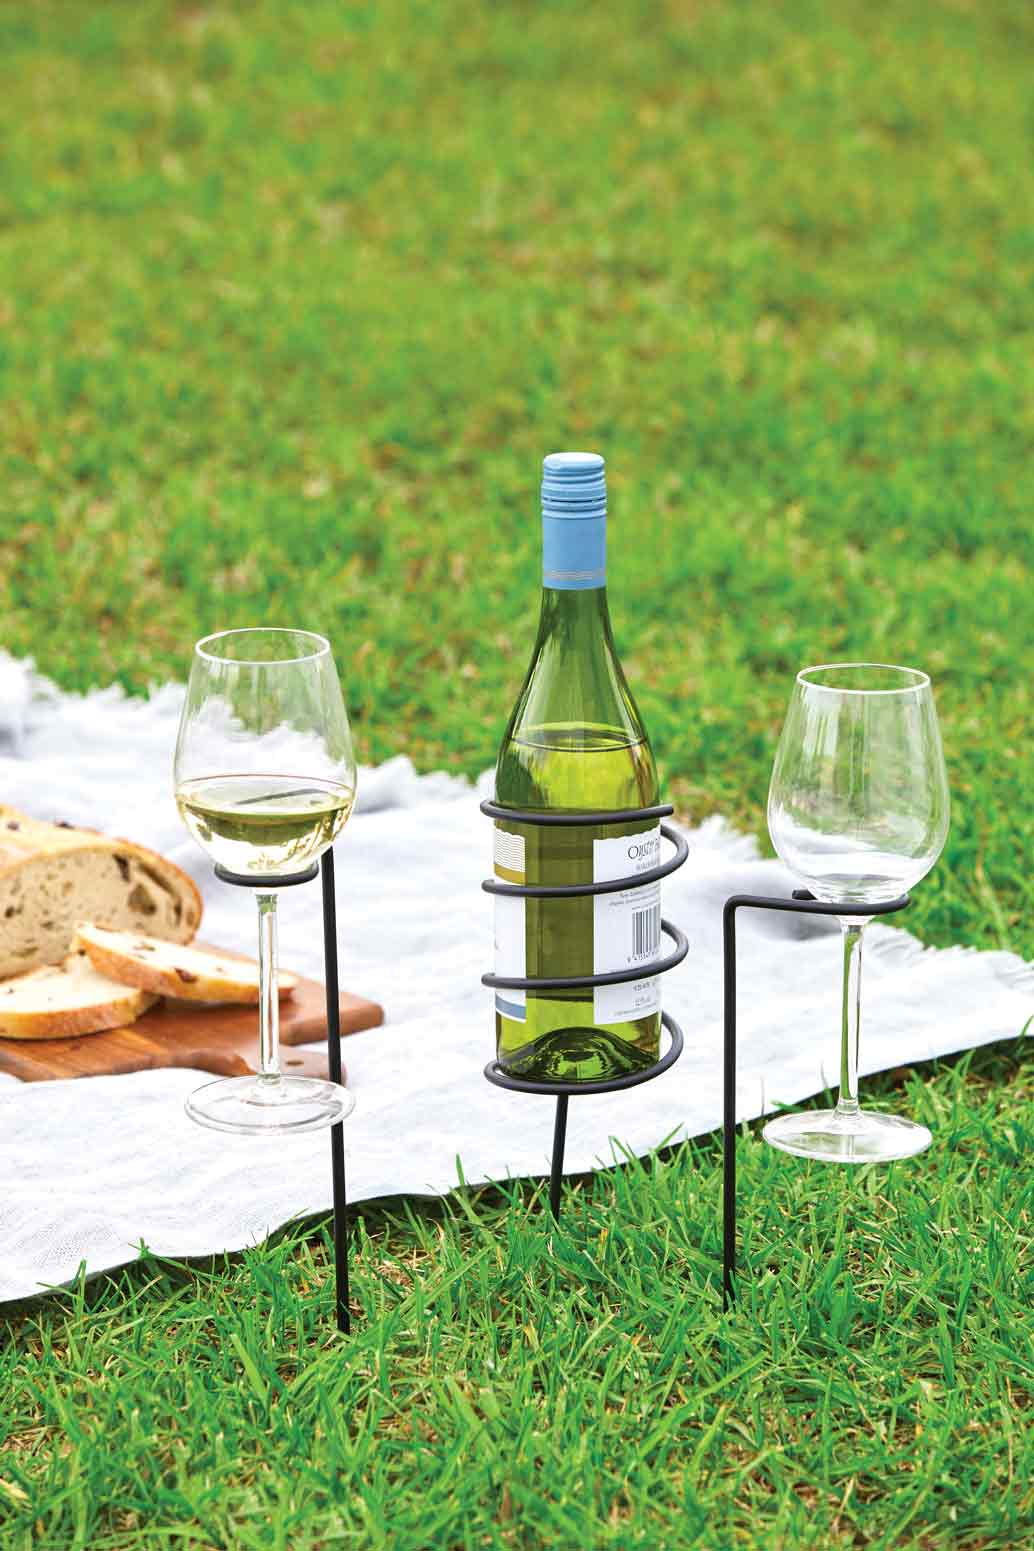 3 PIECE PICNIC WINE SET